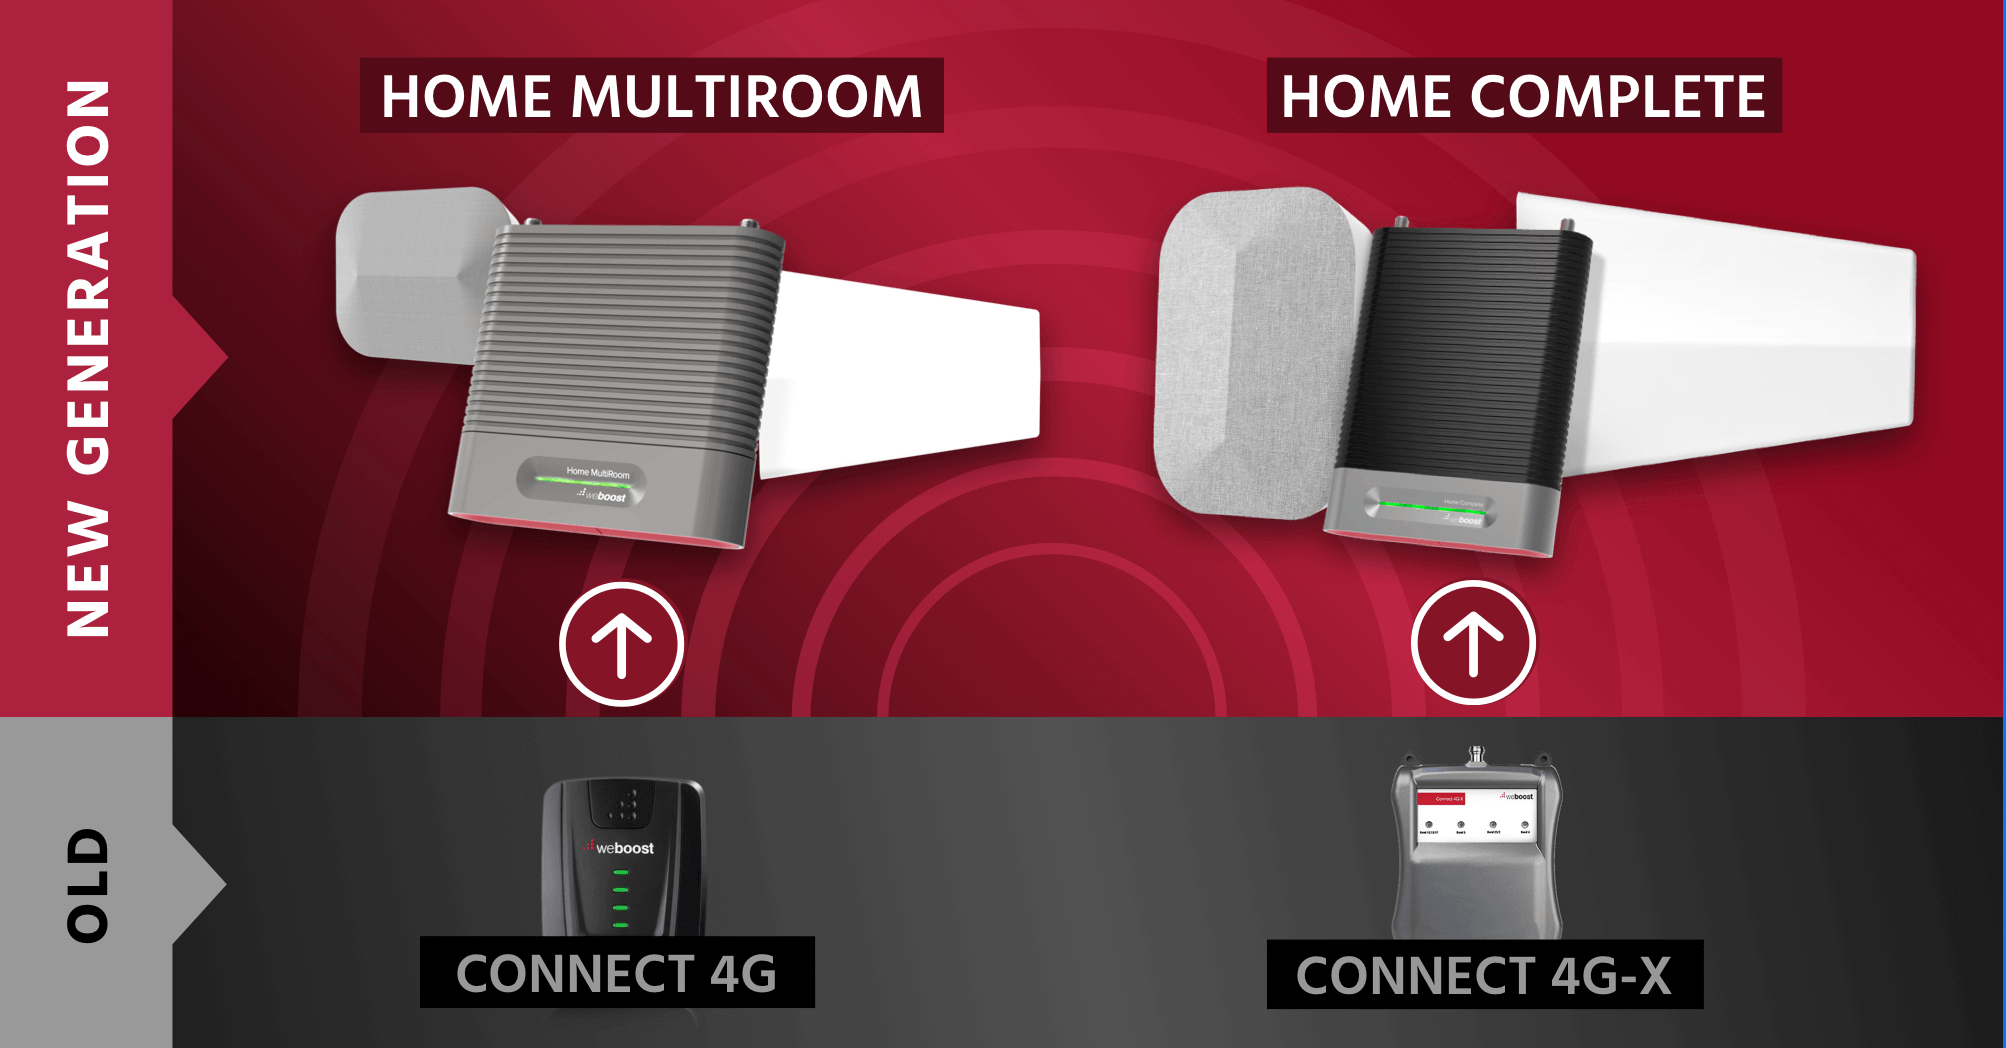 weboost home multiroom weboost home complete launch